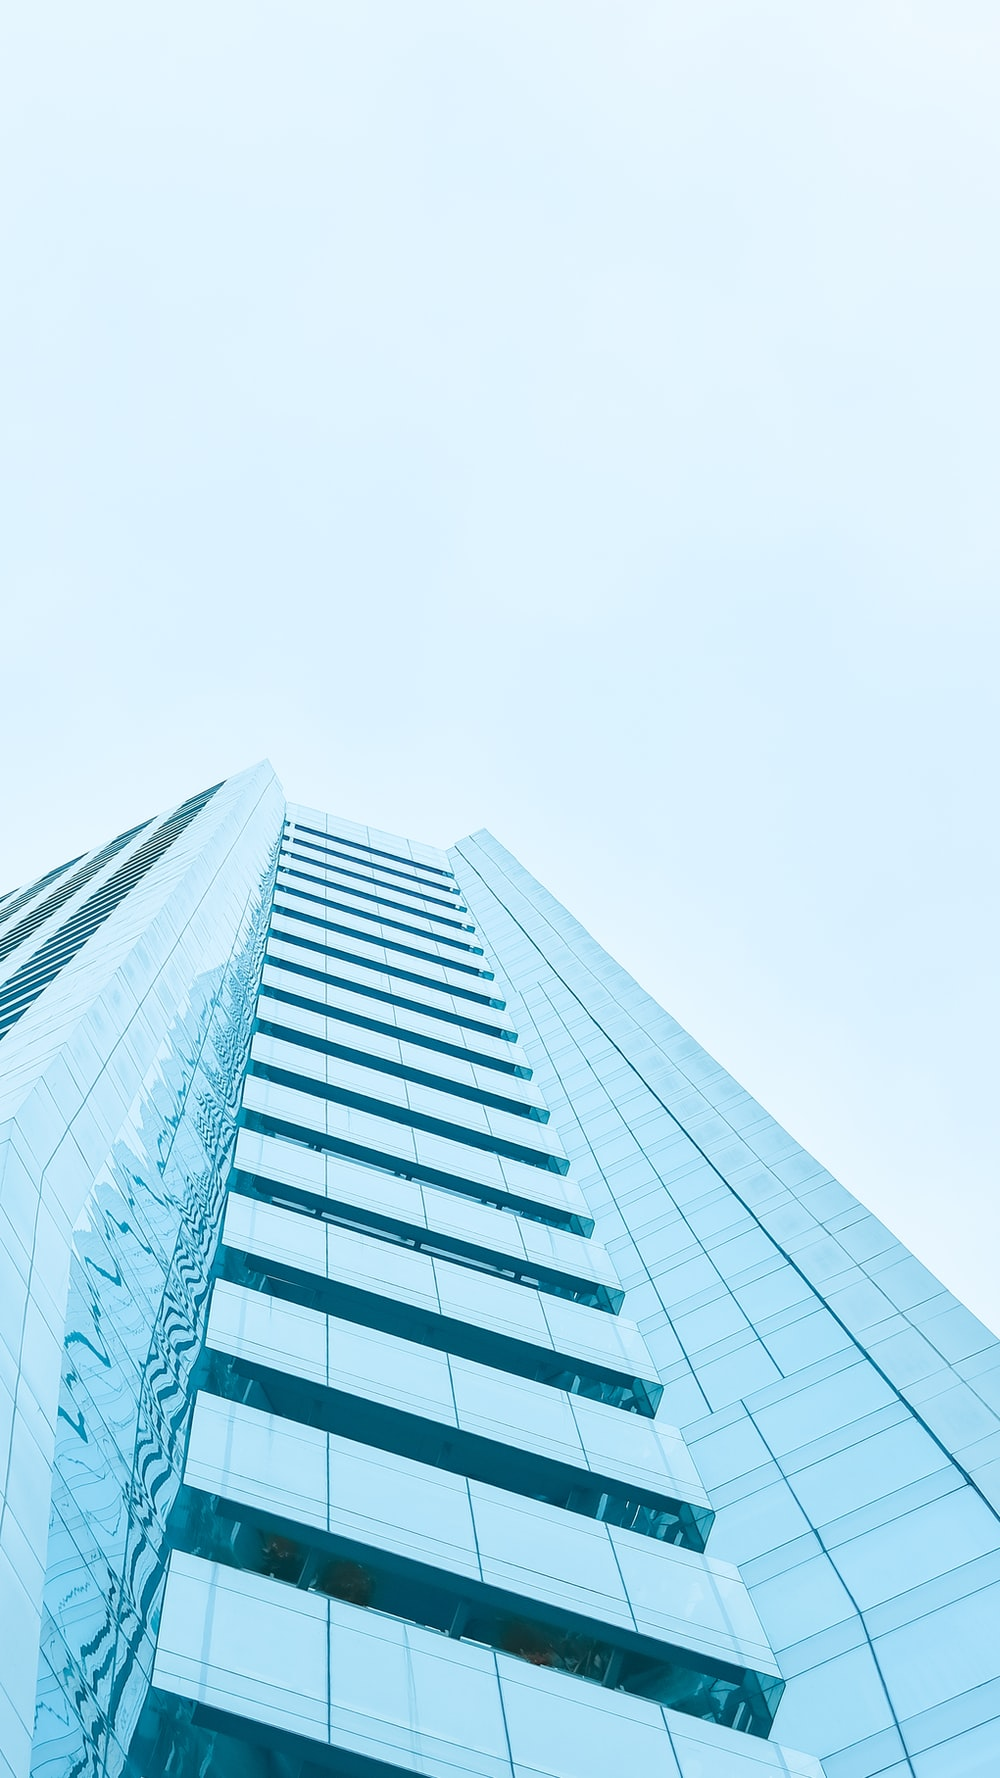 low angle view of high rise building